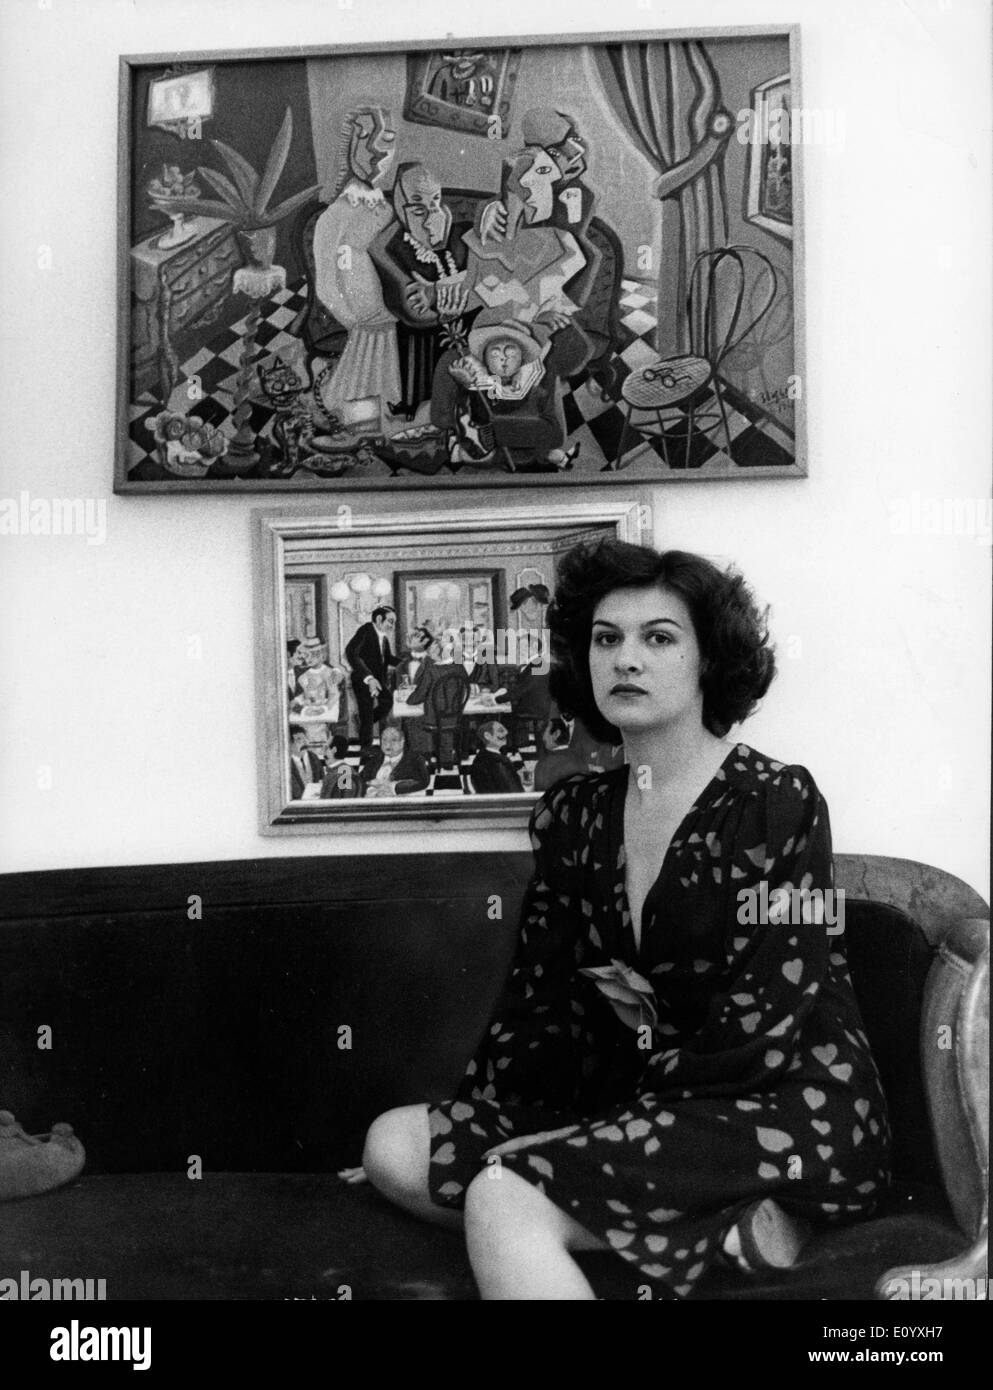 Paloma Picasso Paloma Picasso Black And White Stock Photos Images Alamy